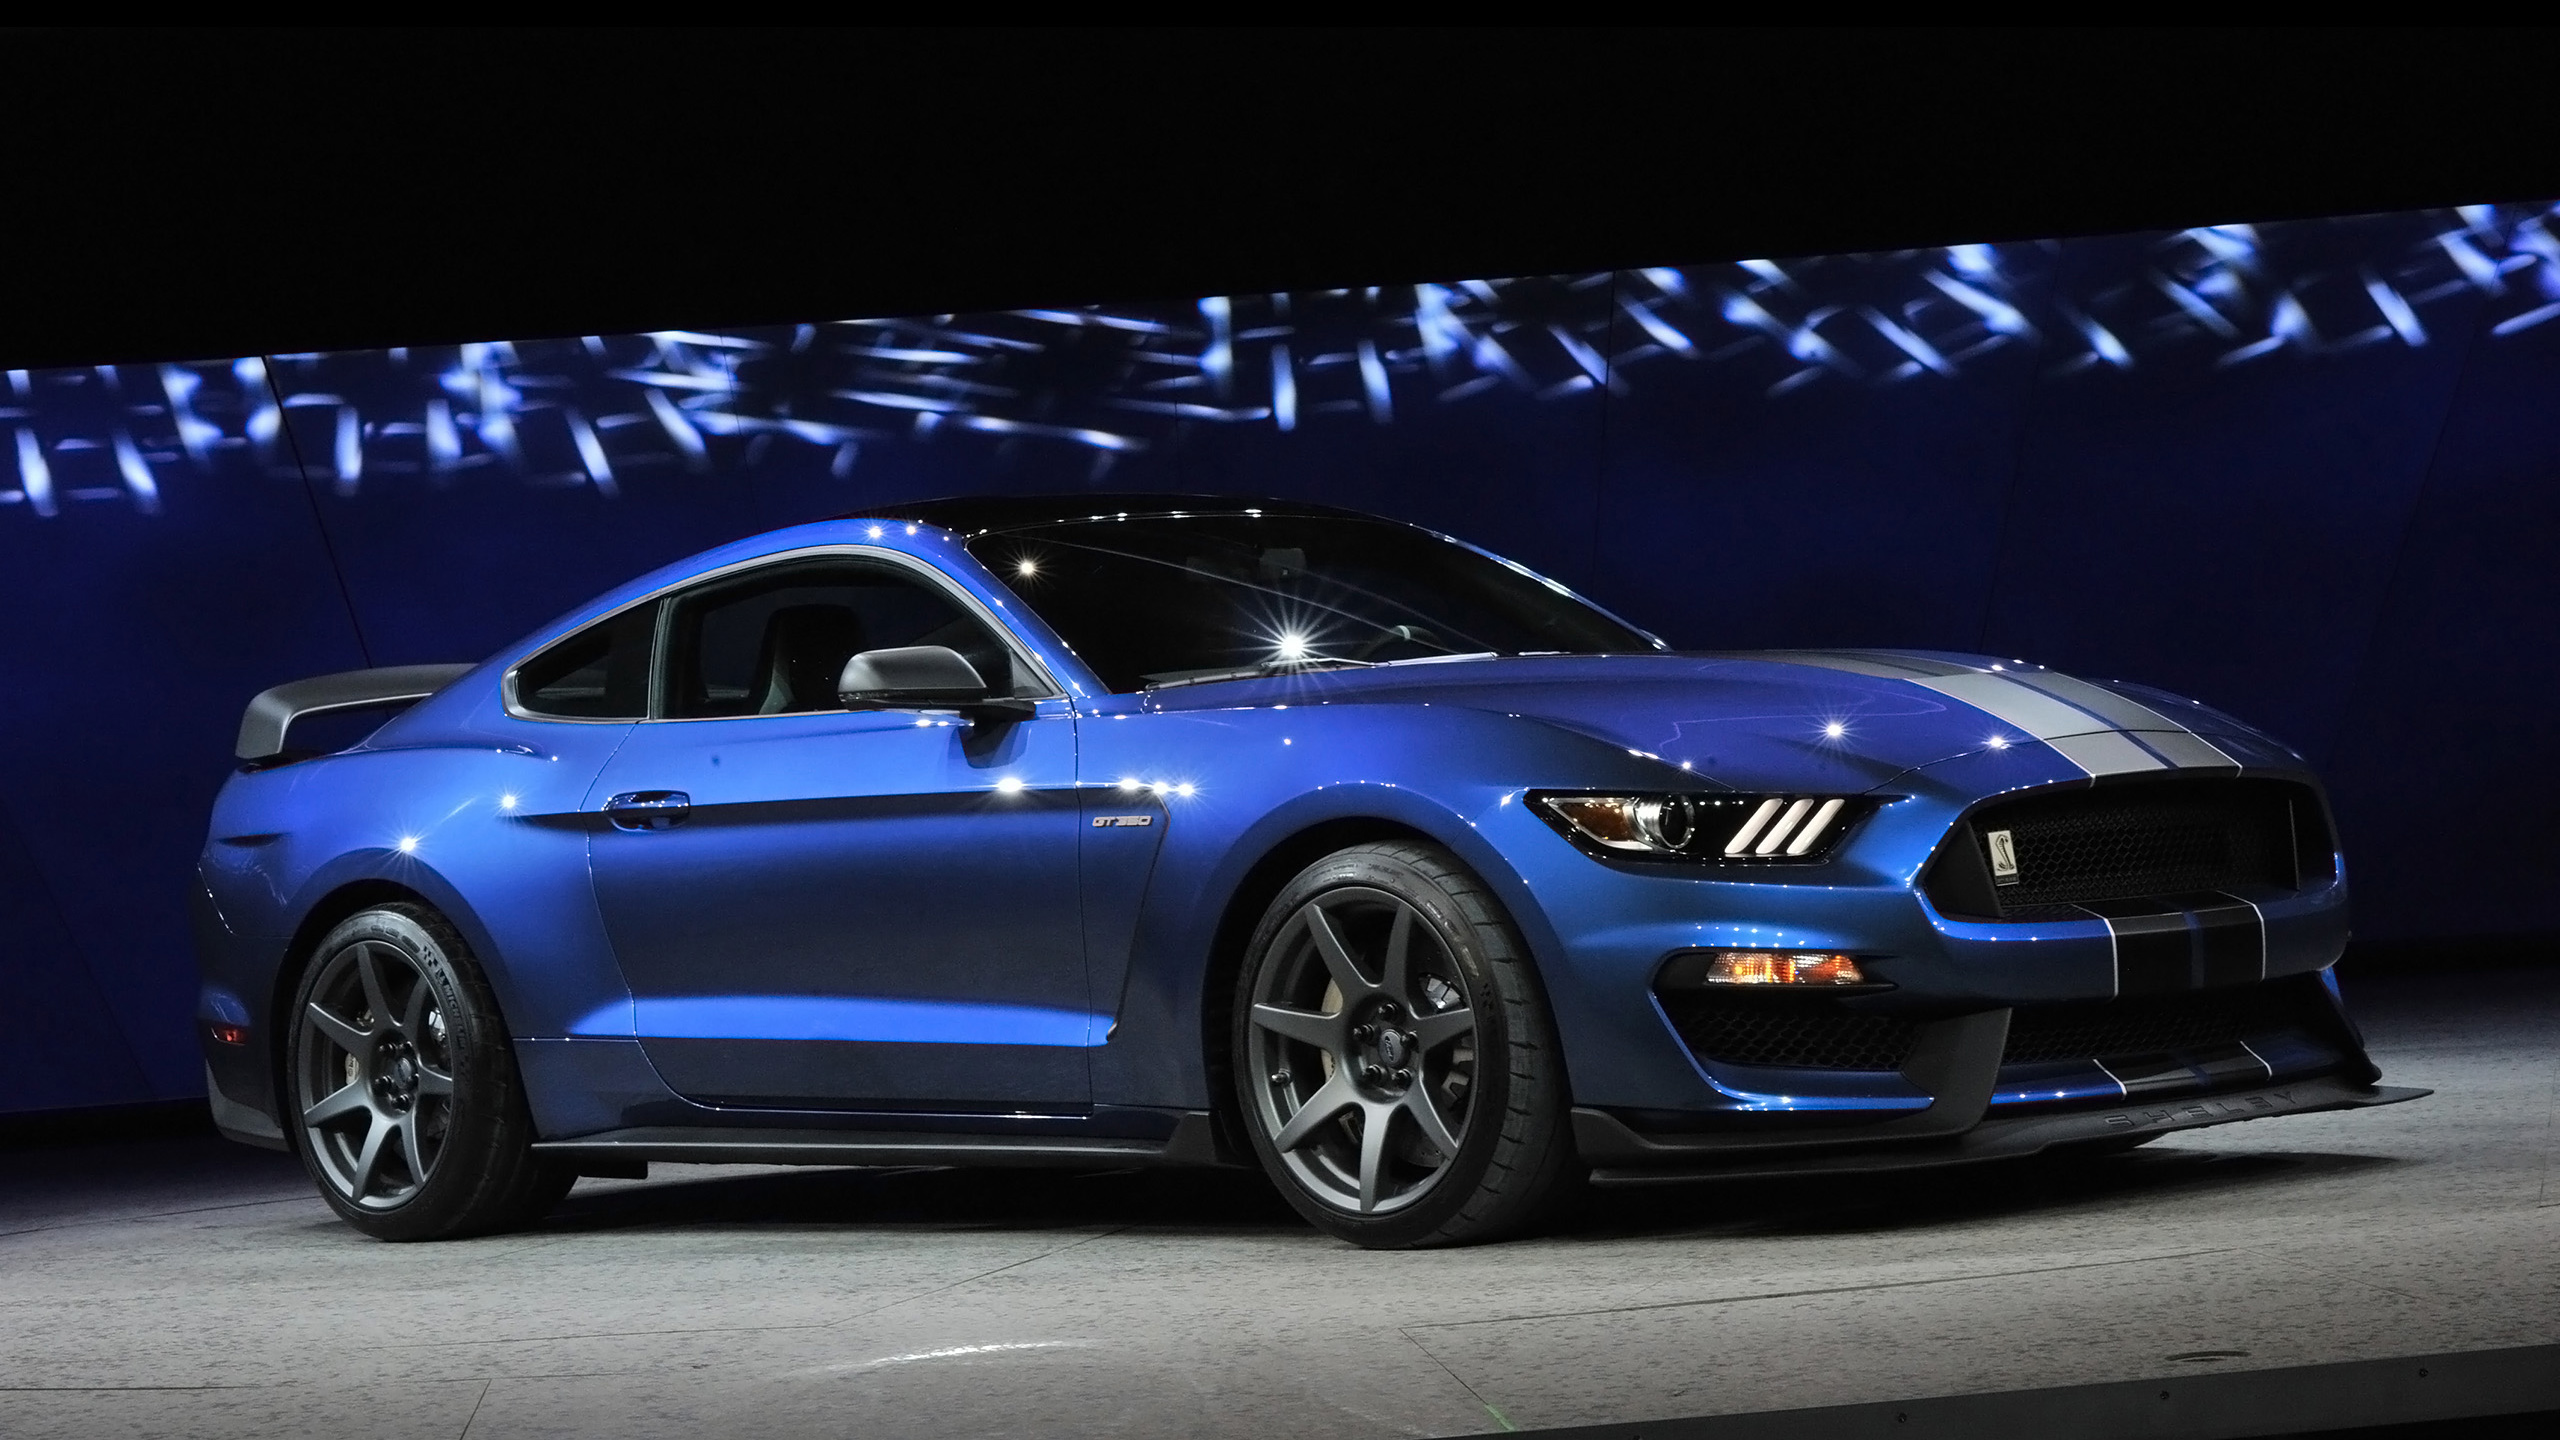 2016 ford shelby gt350r mustang 2 wallpaper hd car wallpapers id 5045. Black Bedroom Furniture Sets. Home Design Ideas